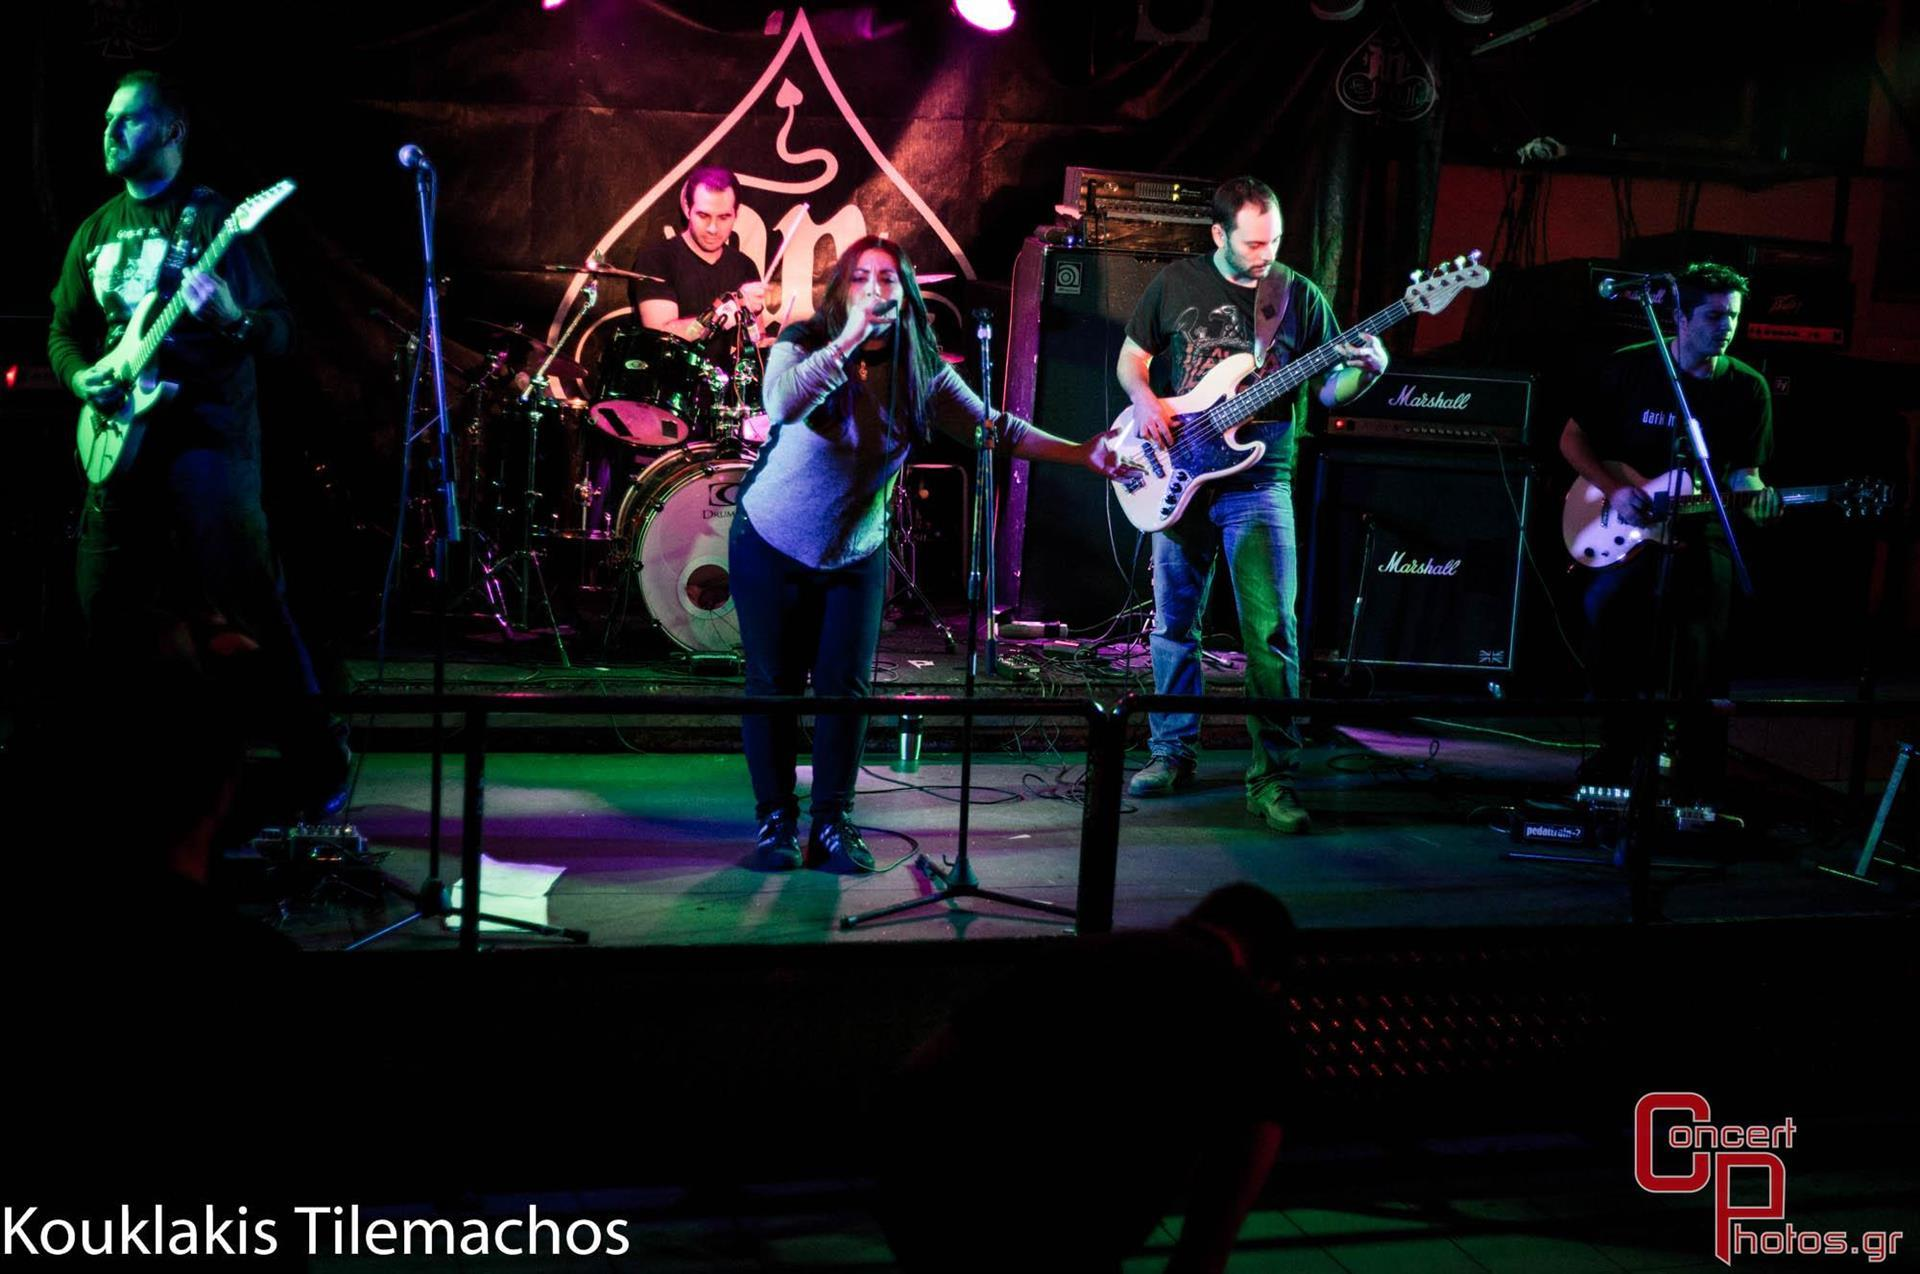 Battle Of The Bands - Leg 2-Battle Of The Bands Athens AN Club Leg 2 photographer:  - 4L6A3273